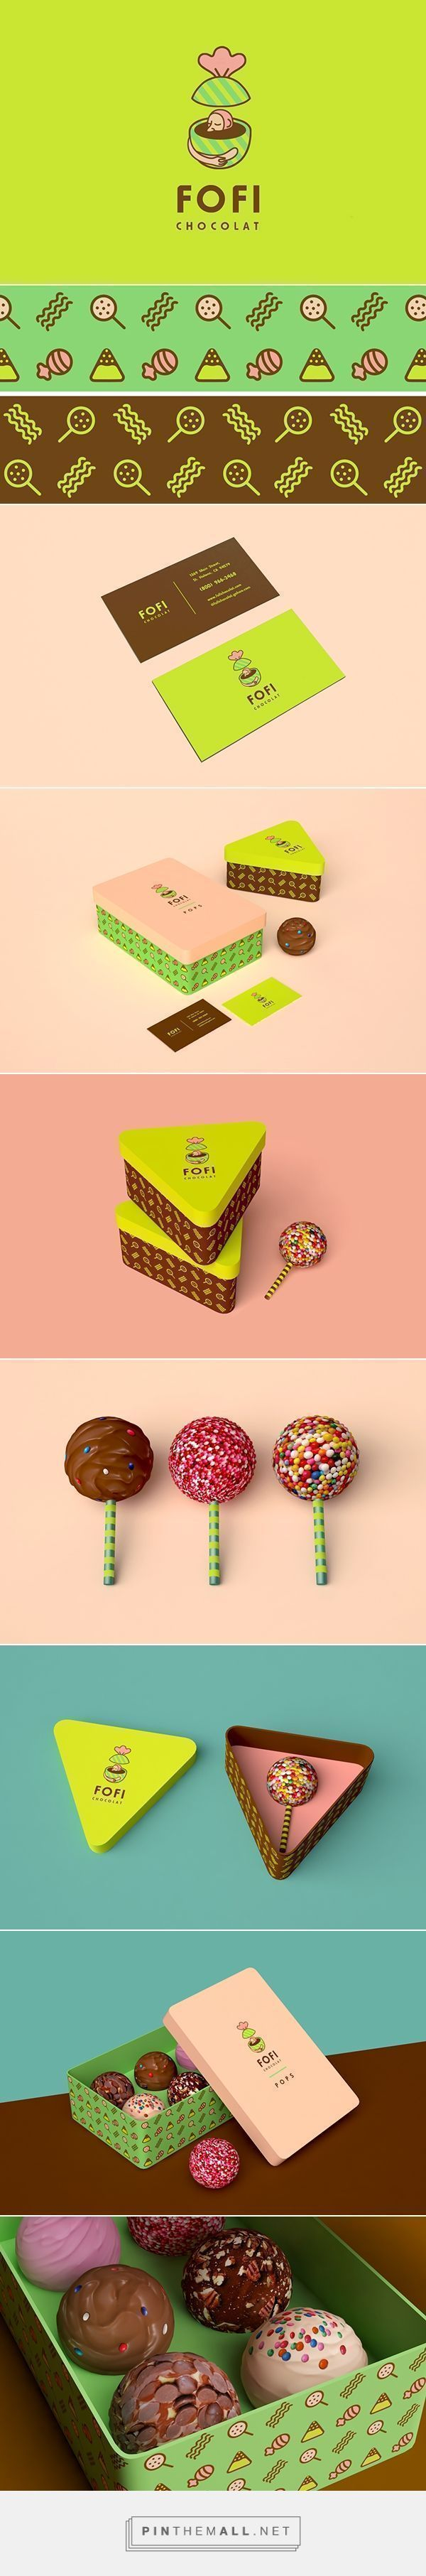 Packaging and branding design for Fofi Chocolat